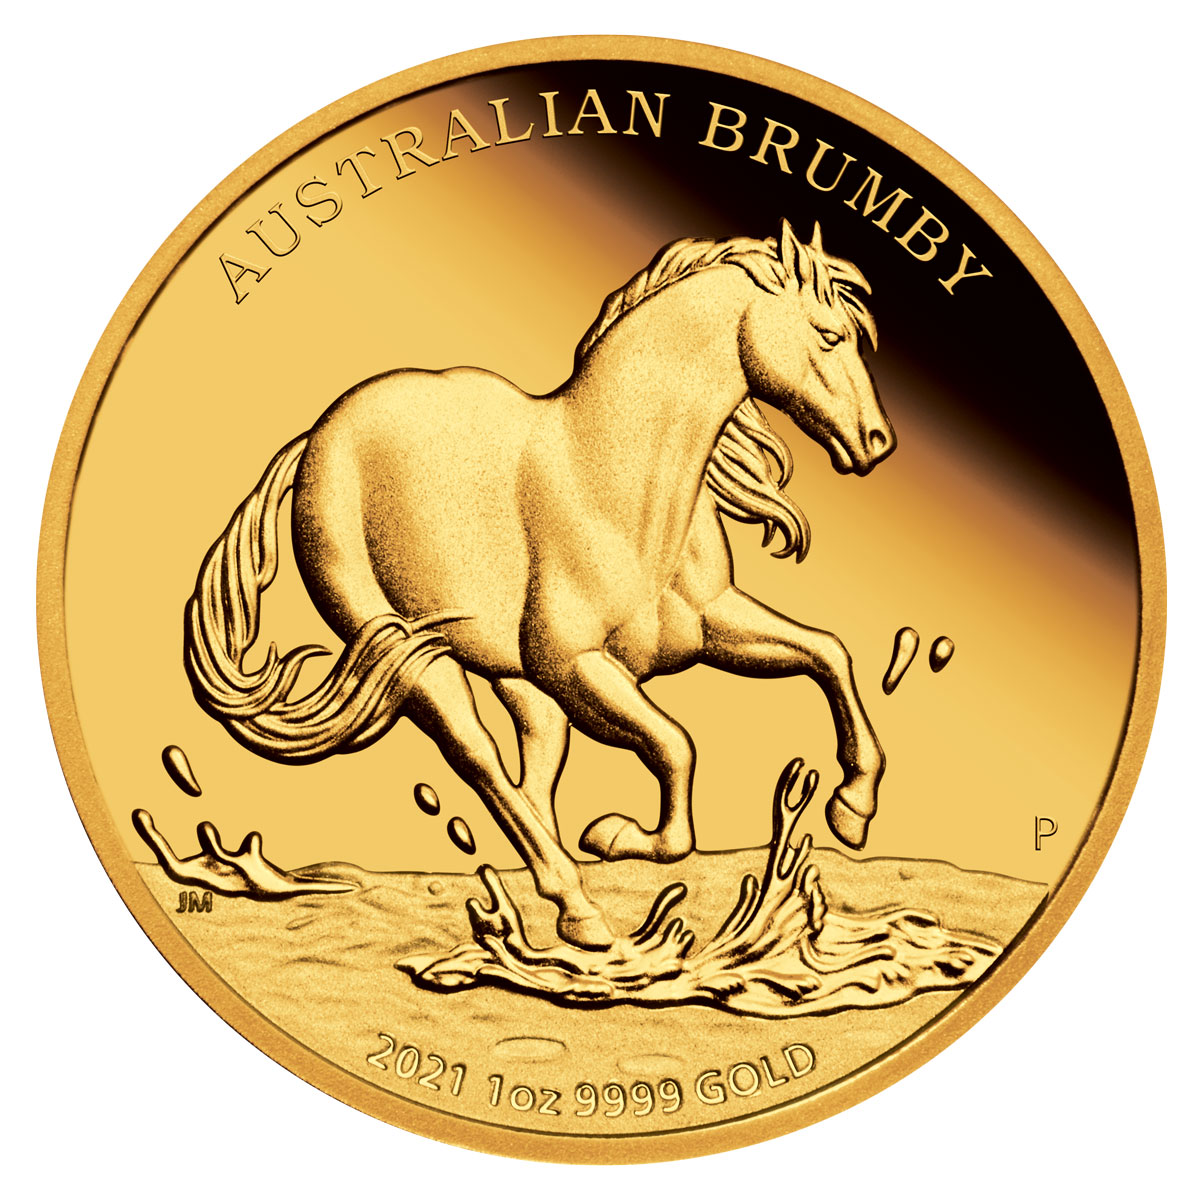 2021 Australia Brumby 1 oz Gold Proof $100 Coin GEM Proof